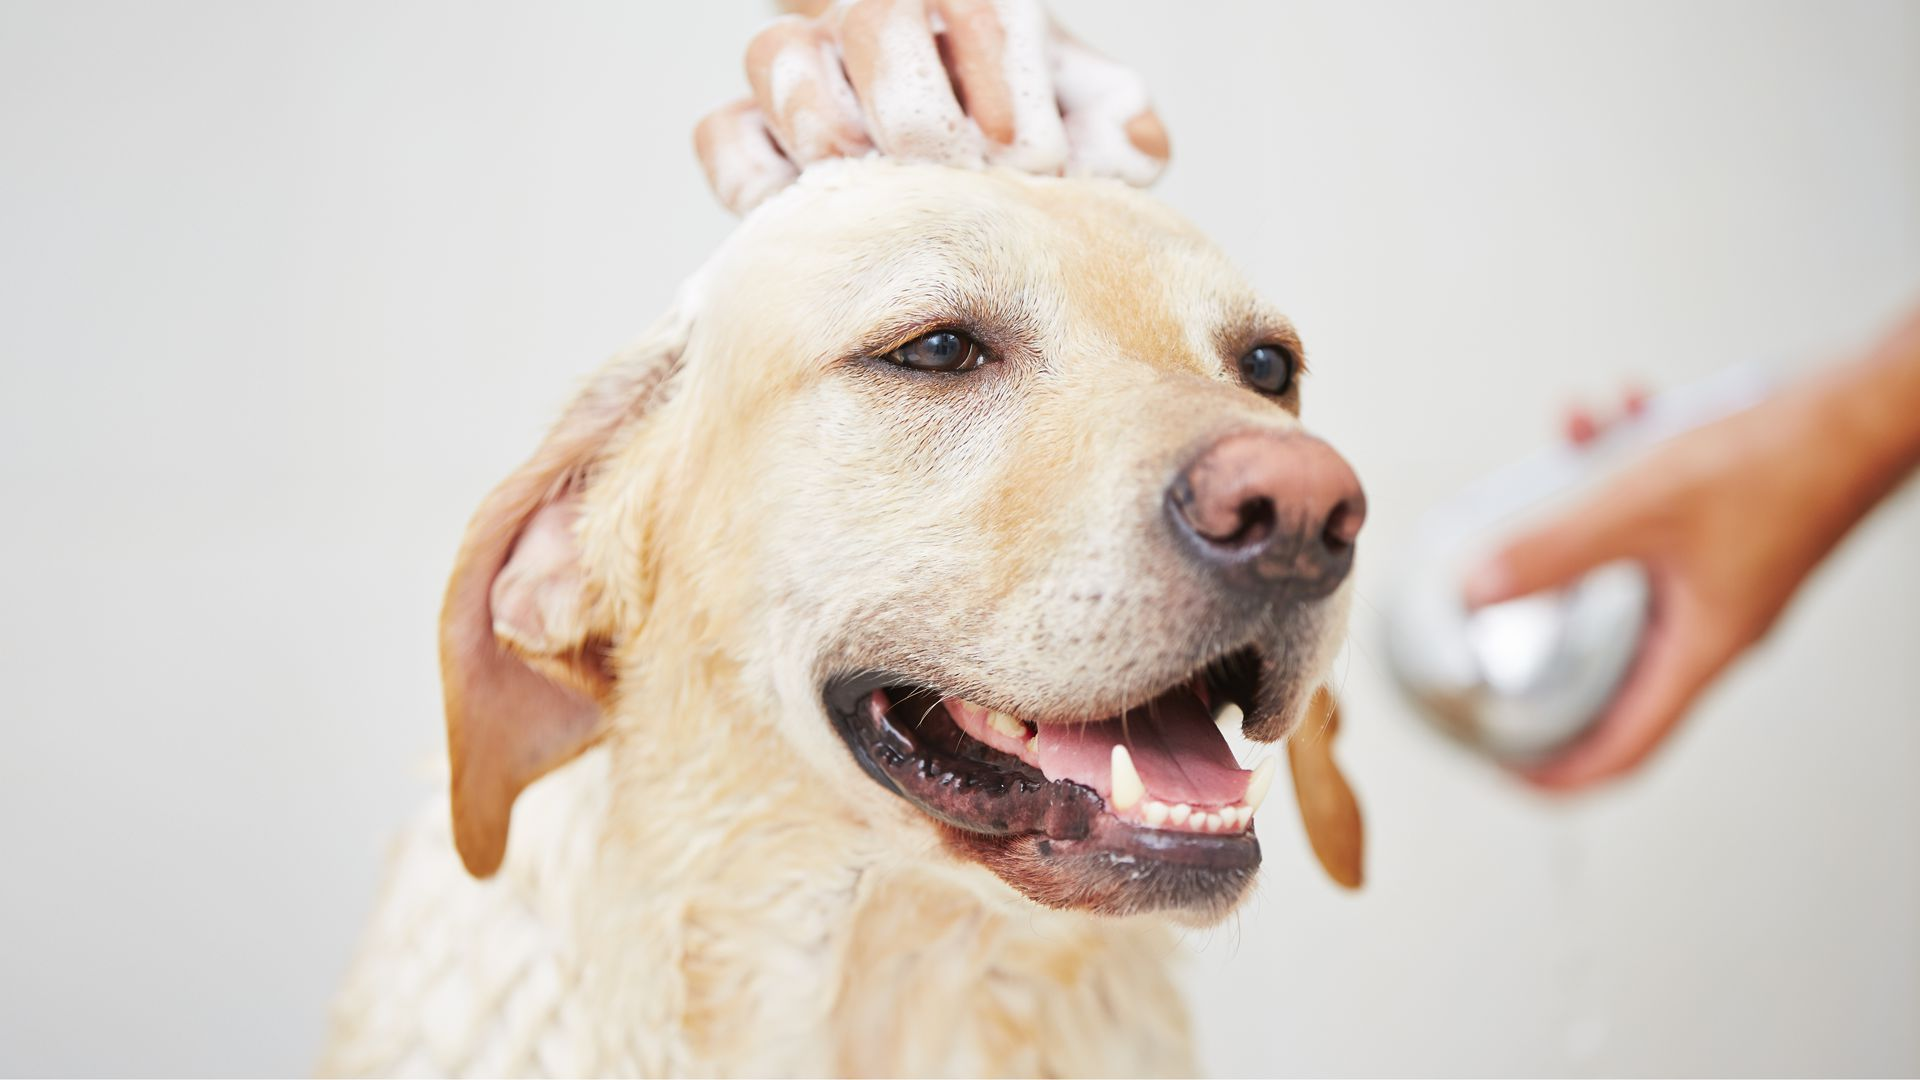 Mobile dog washing grooming jims dog wash 131546 dog grooming service in melbourne sydney brisbane hobart adelaide or perth or one of australias many regional cities from geelong to the gold coast solutioingenieria Gallery